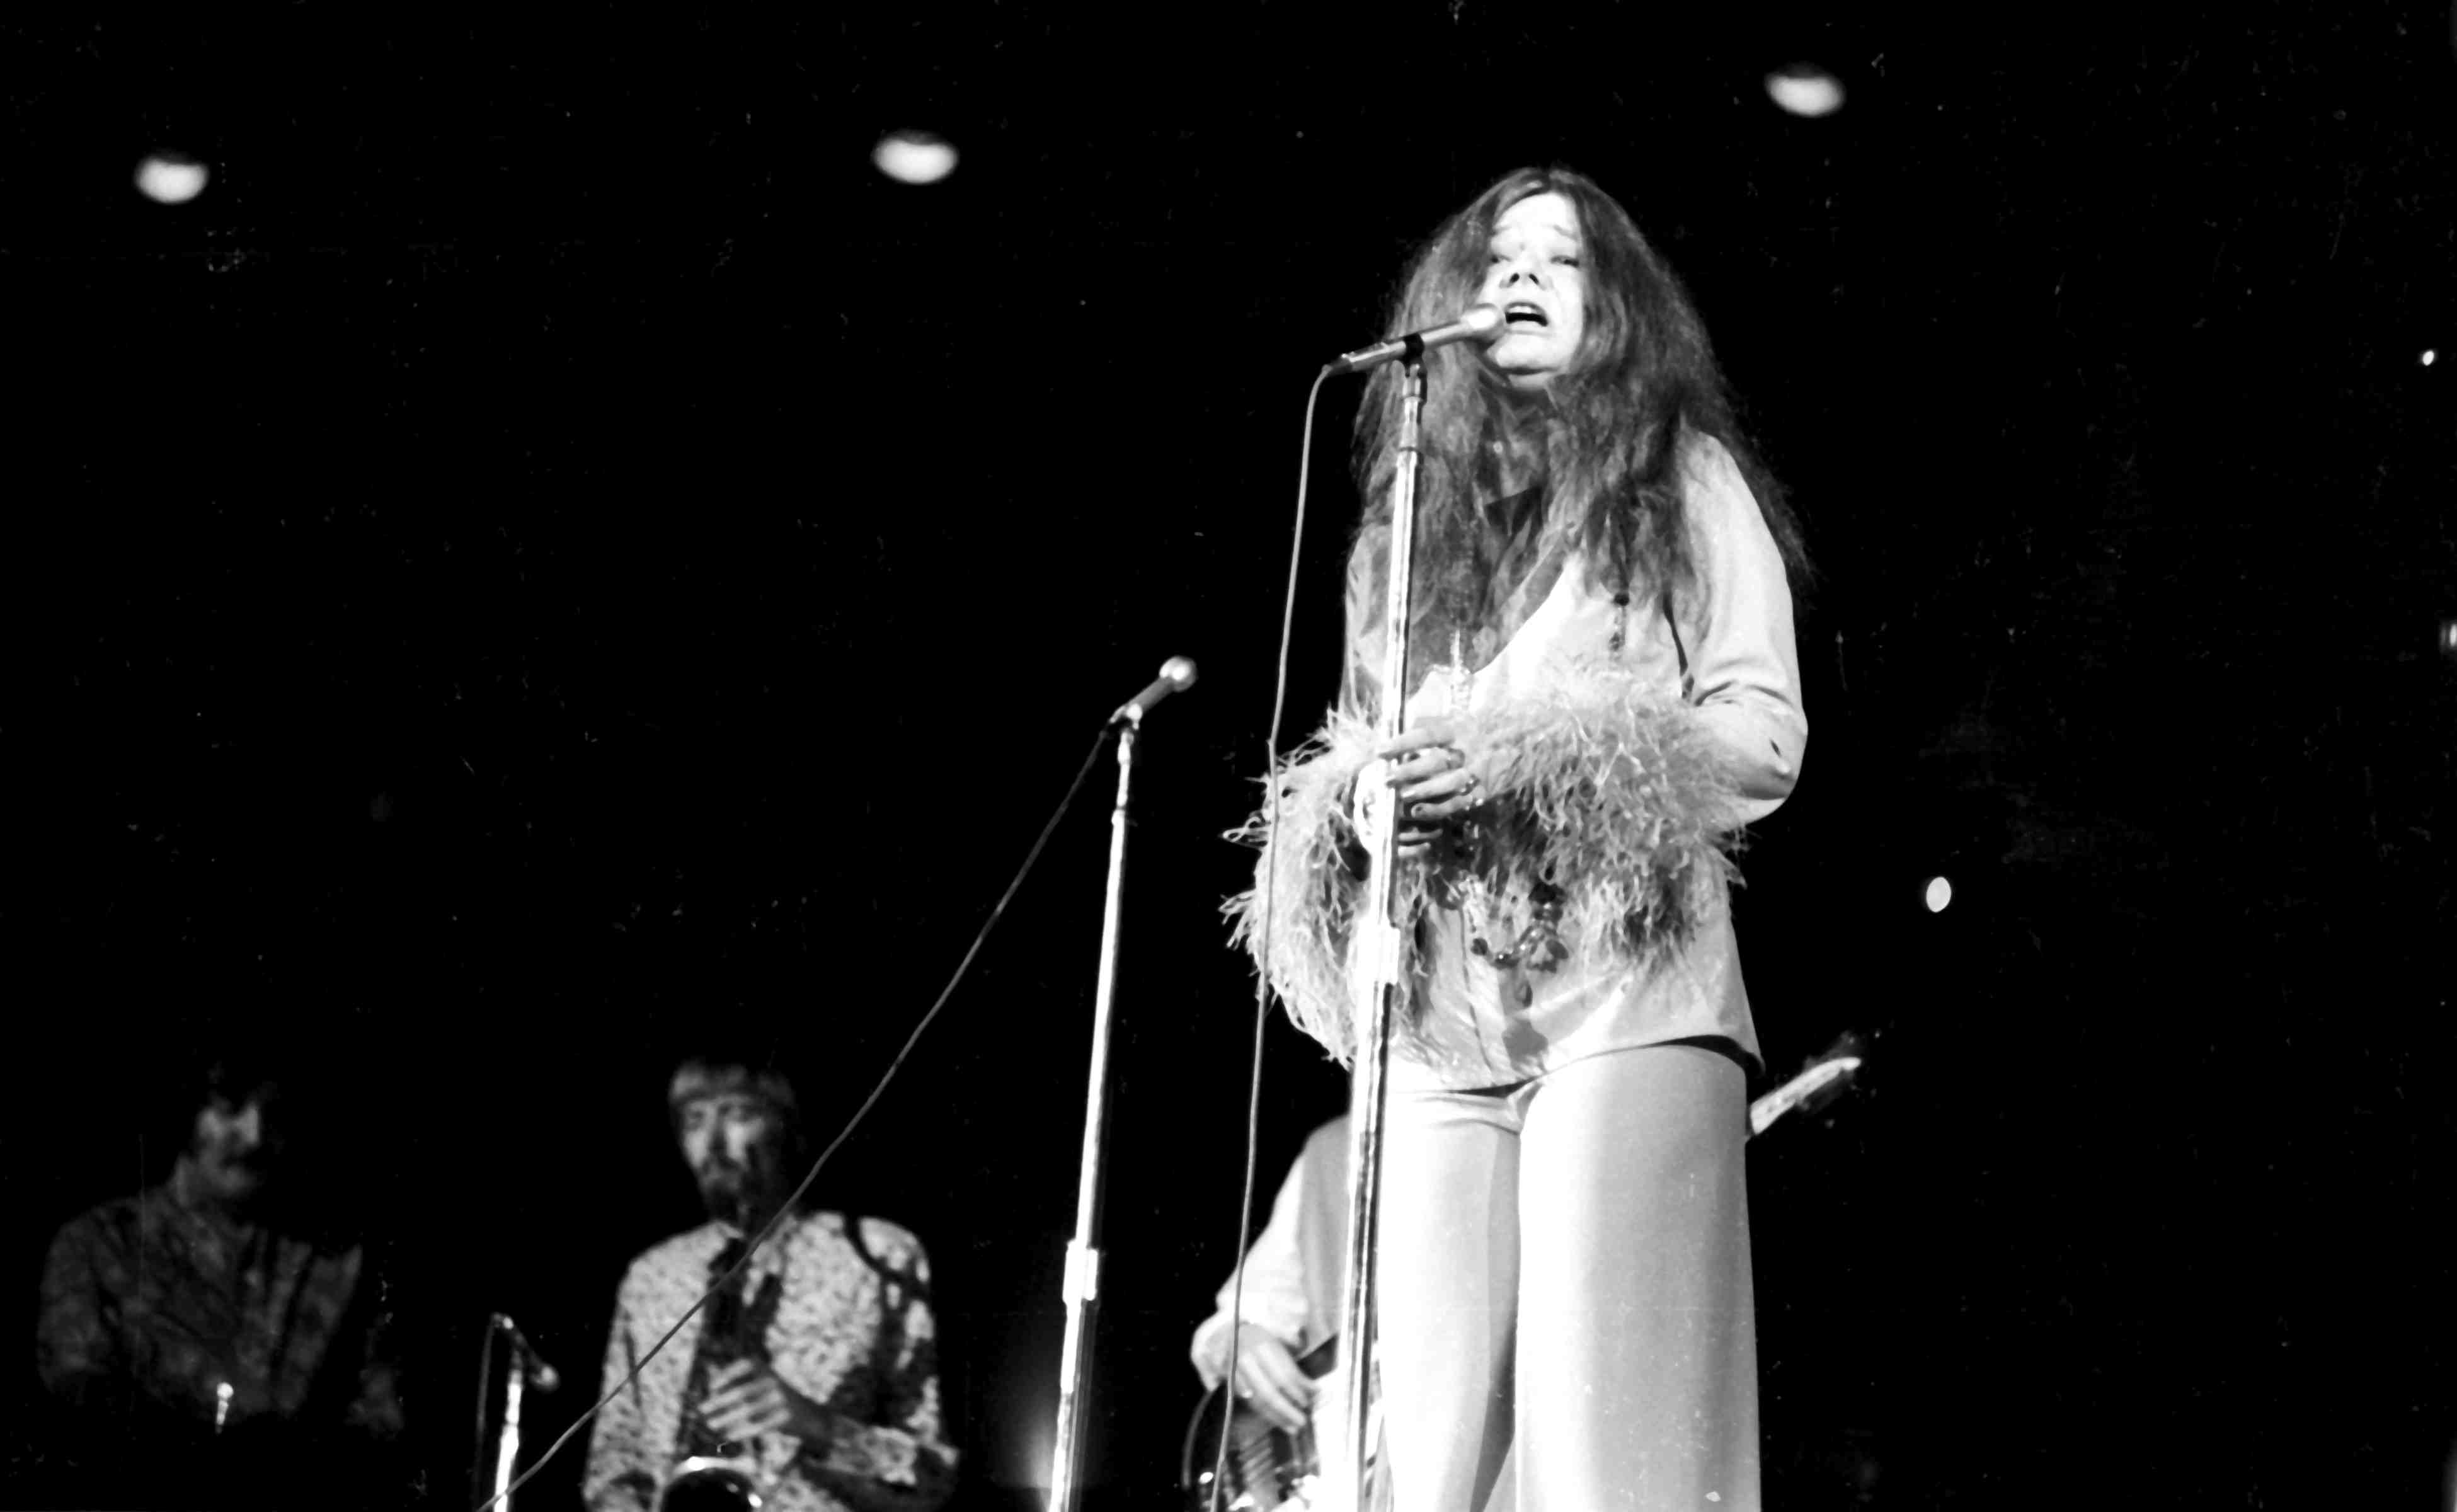 Janis Joplin performs live on stage, black and white photograph.